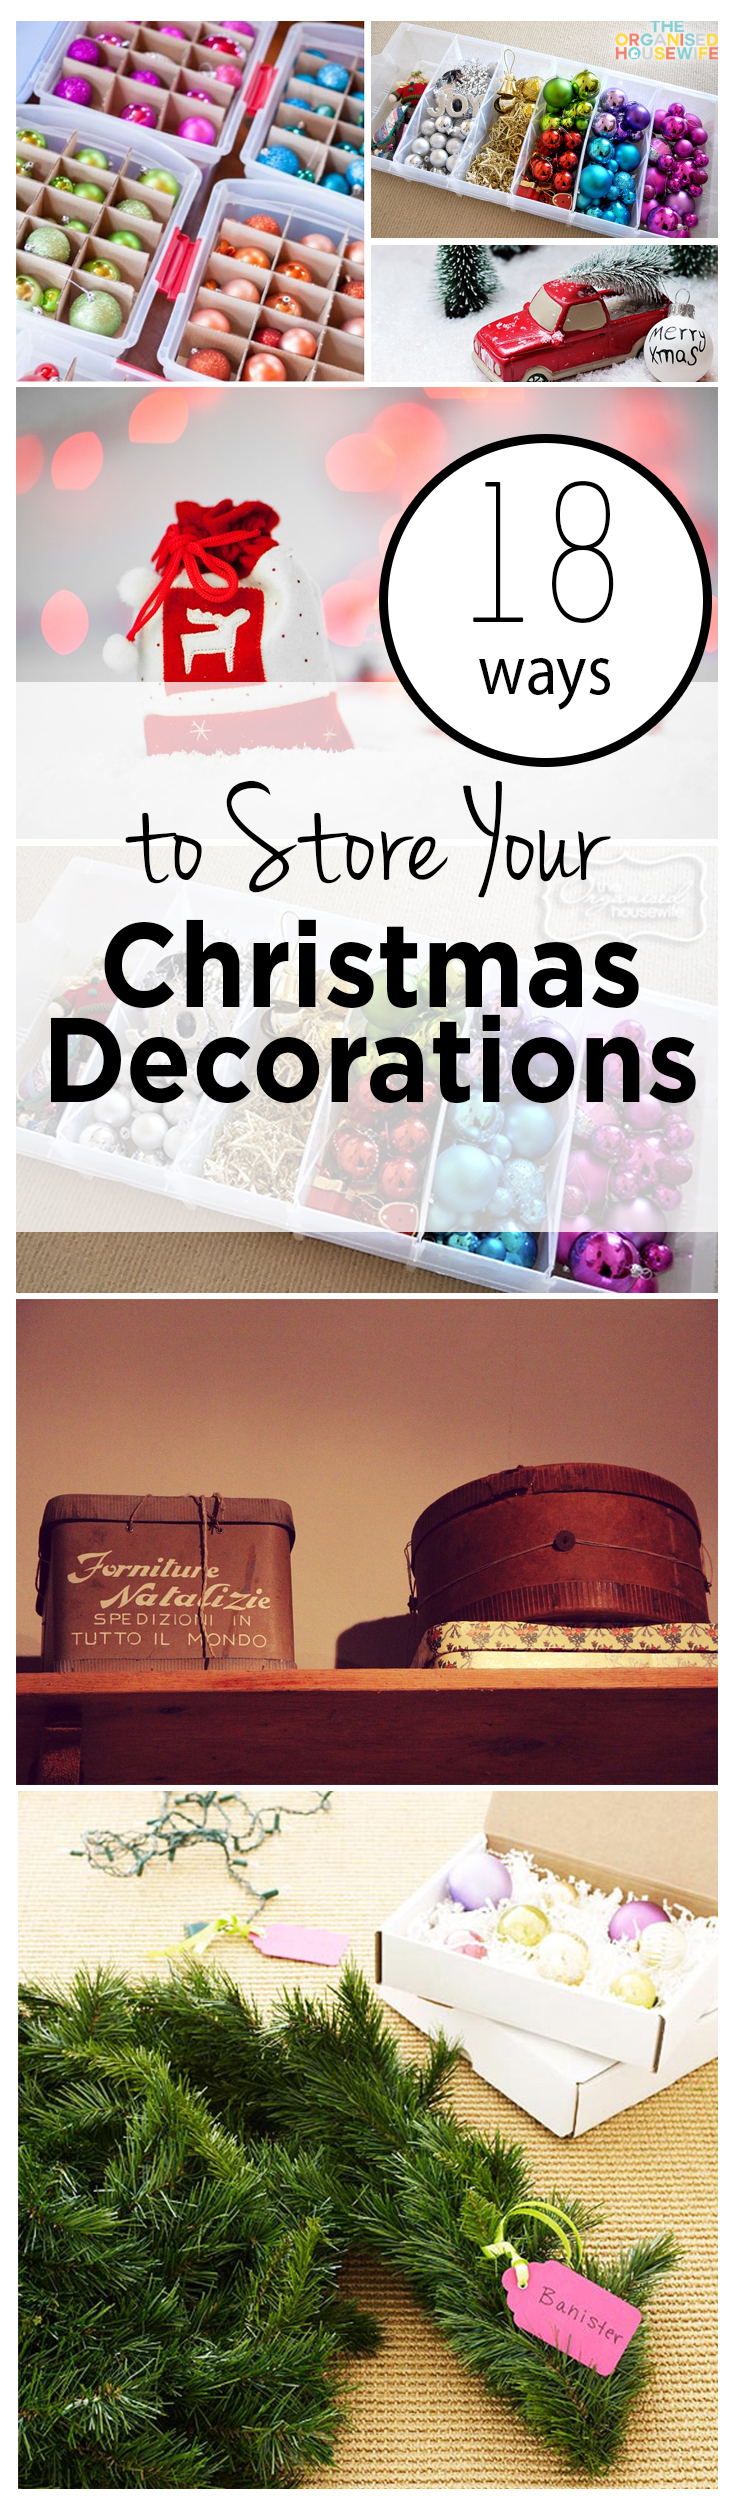 Storage For Christmas Decorations 18 Ways To Store Your Christmas Decorations